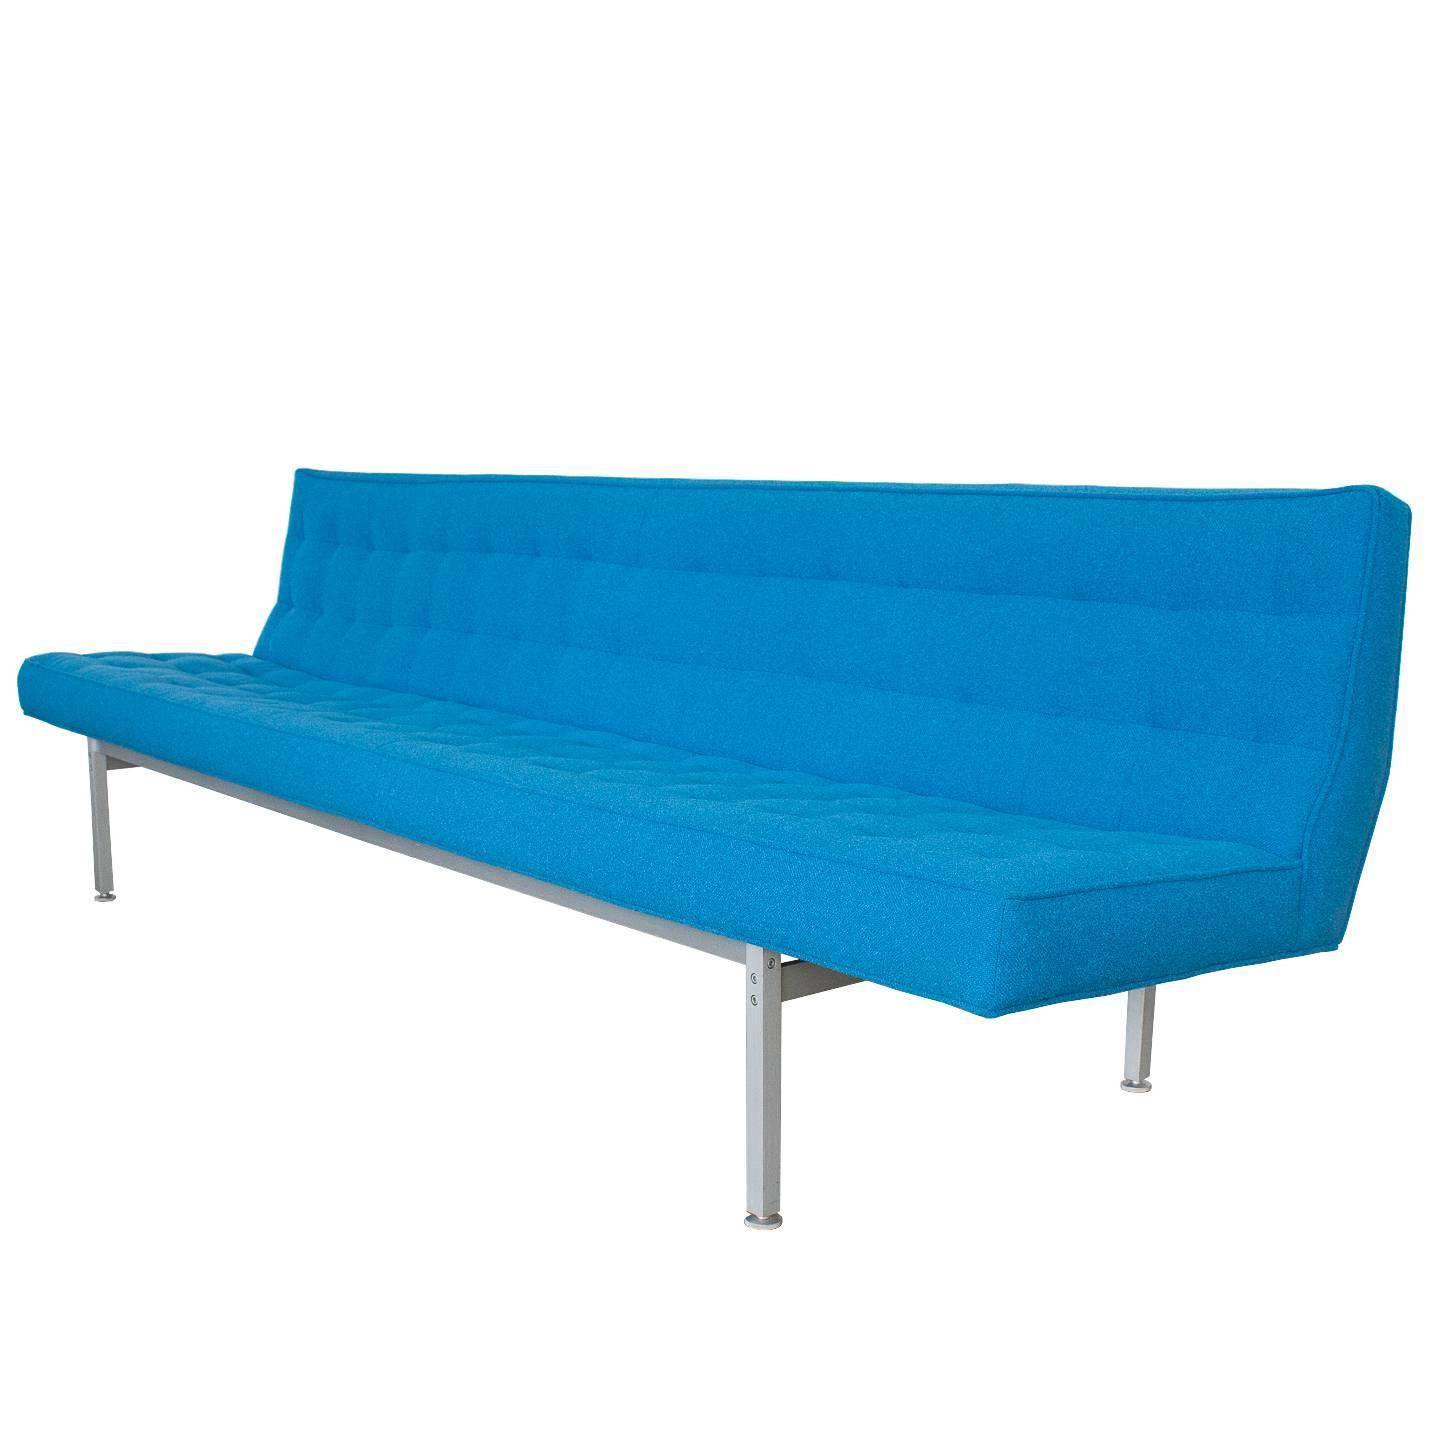 Armless Aluminum Frame Sofa Attributed To Knoll At 1stdibs